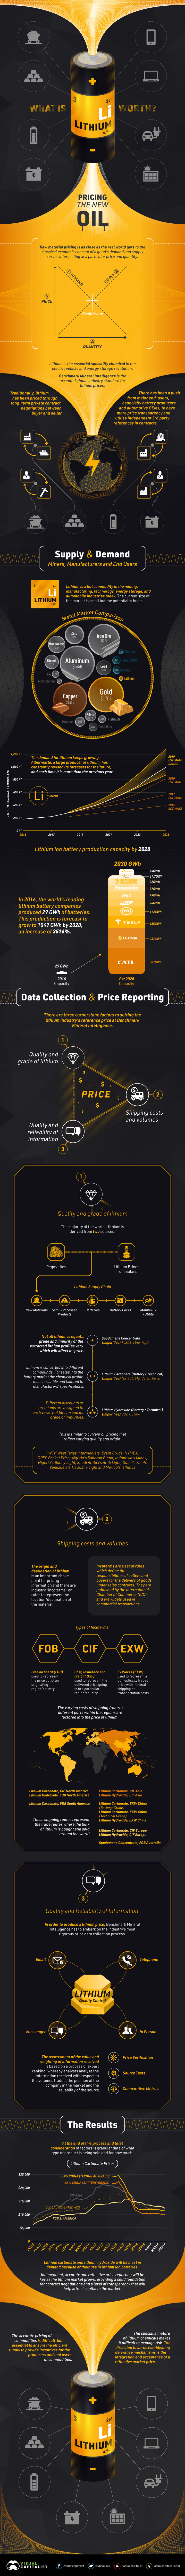 Why is the Value of Lithium Soaring? - Infographic